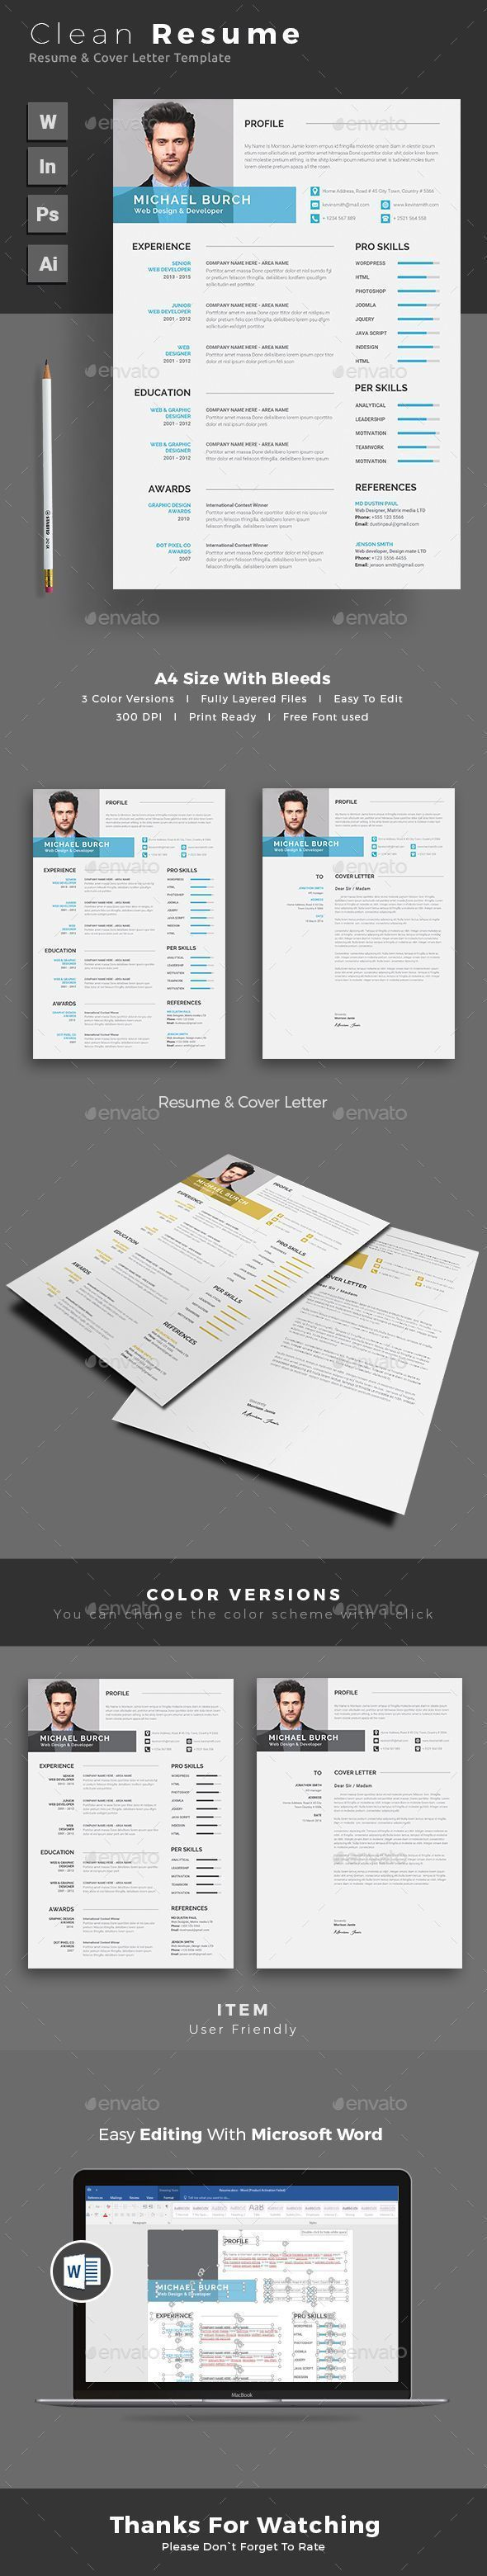 Resume 11 best portfolio images on Pinterest